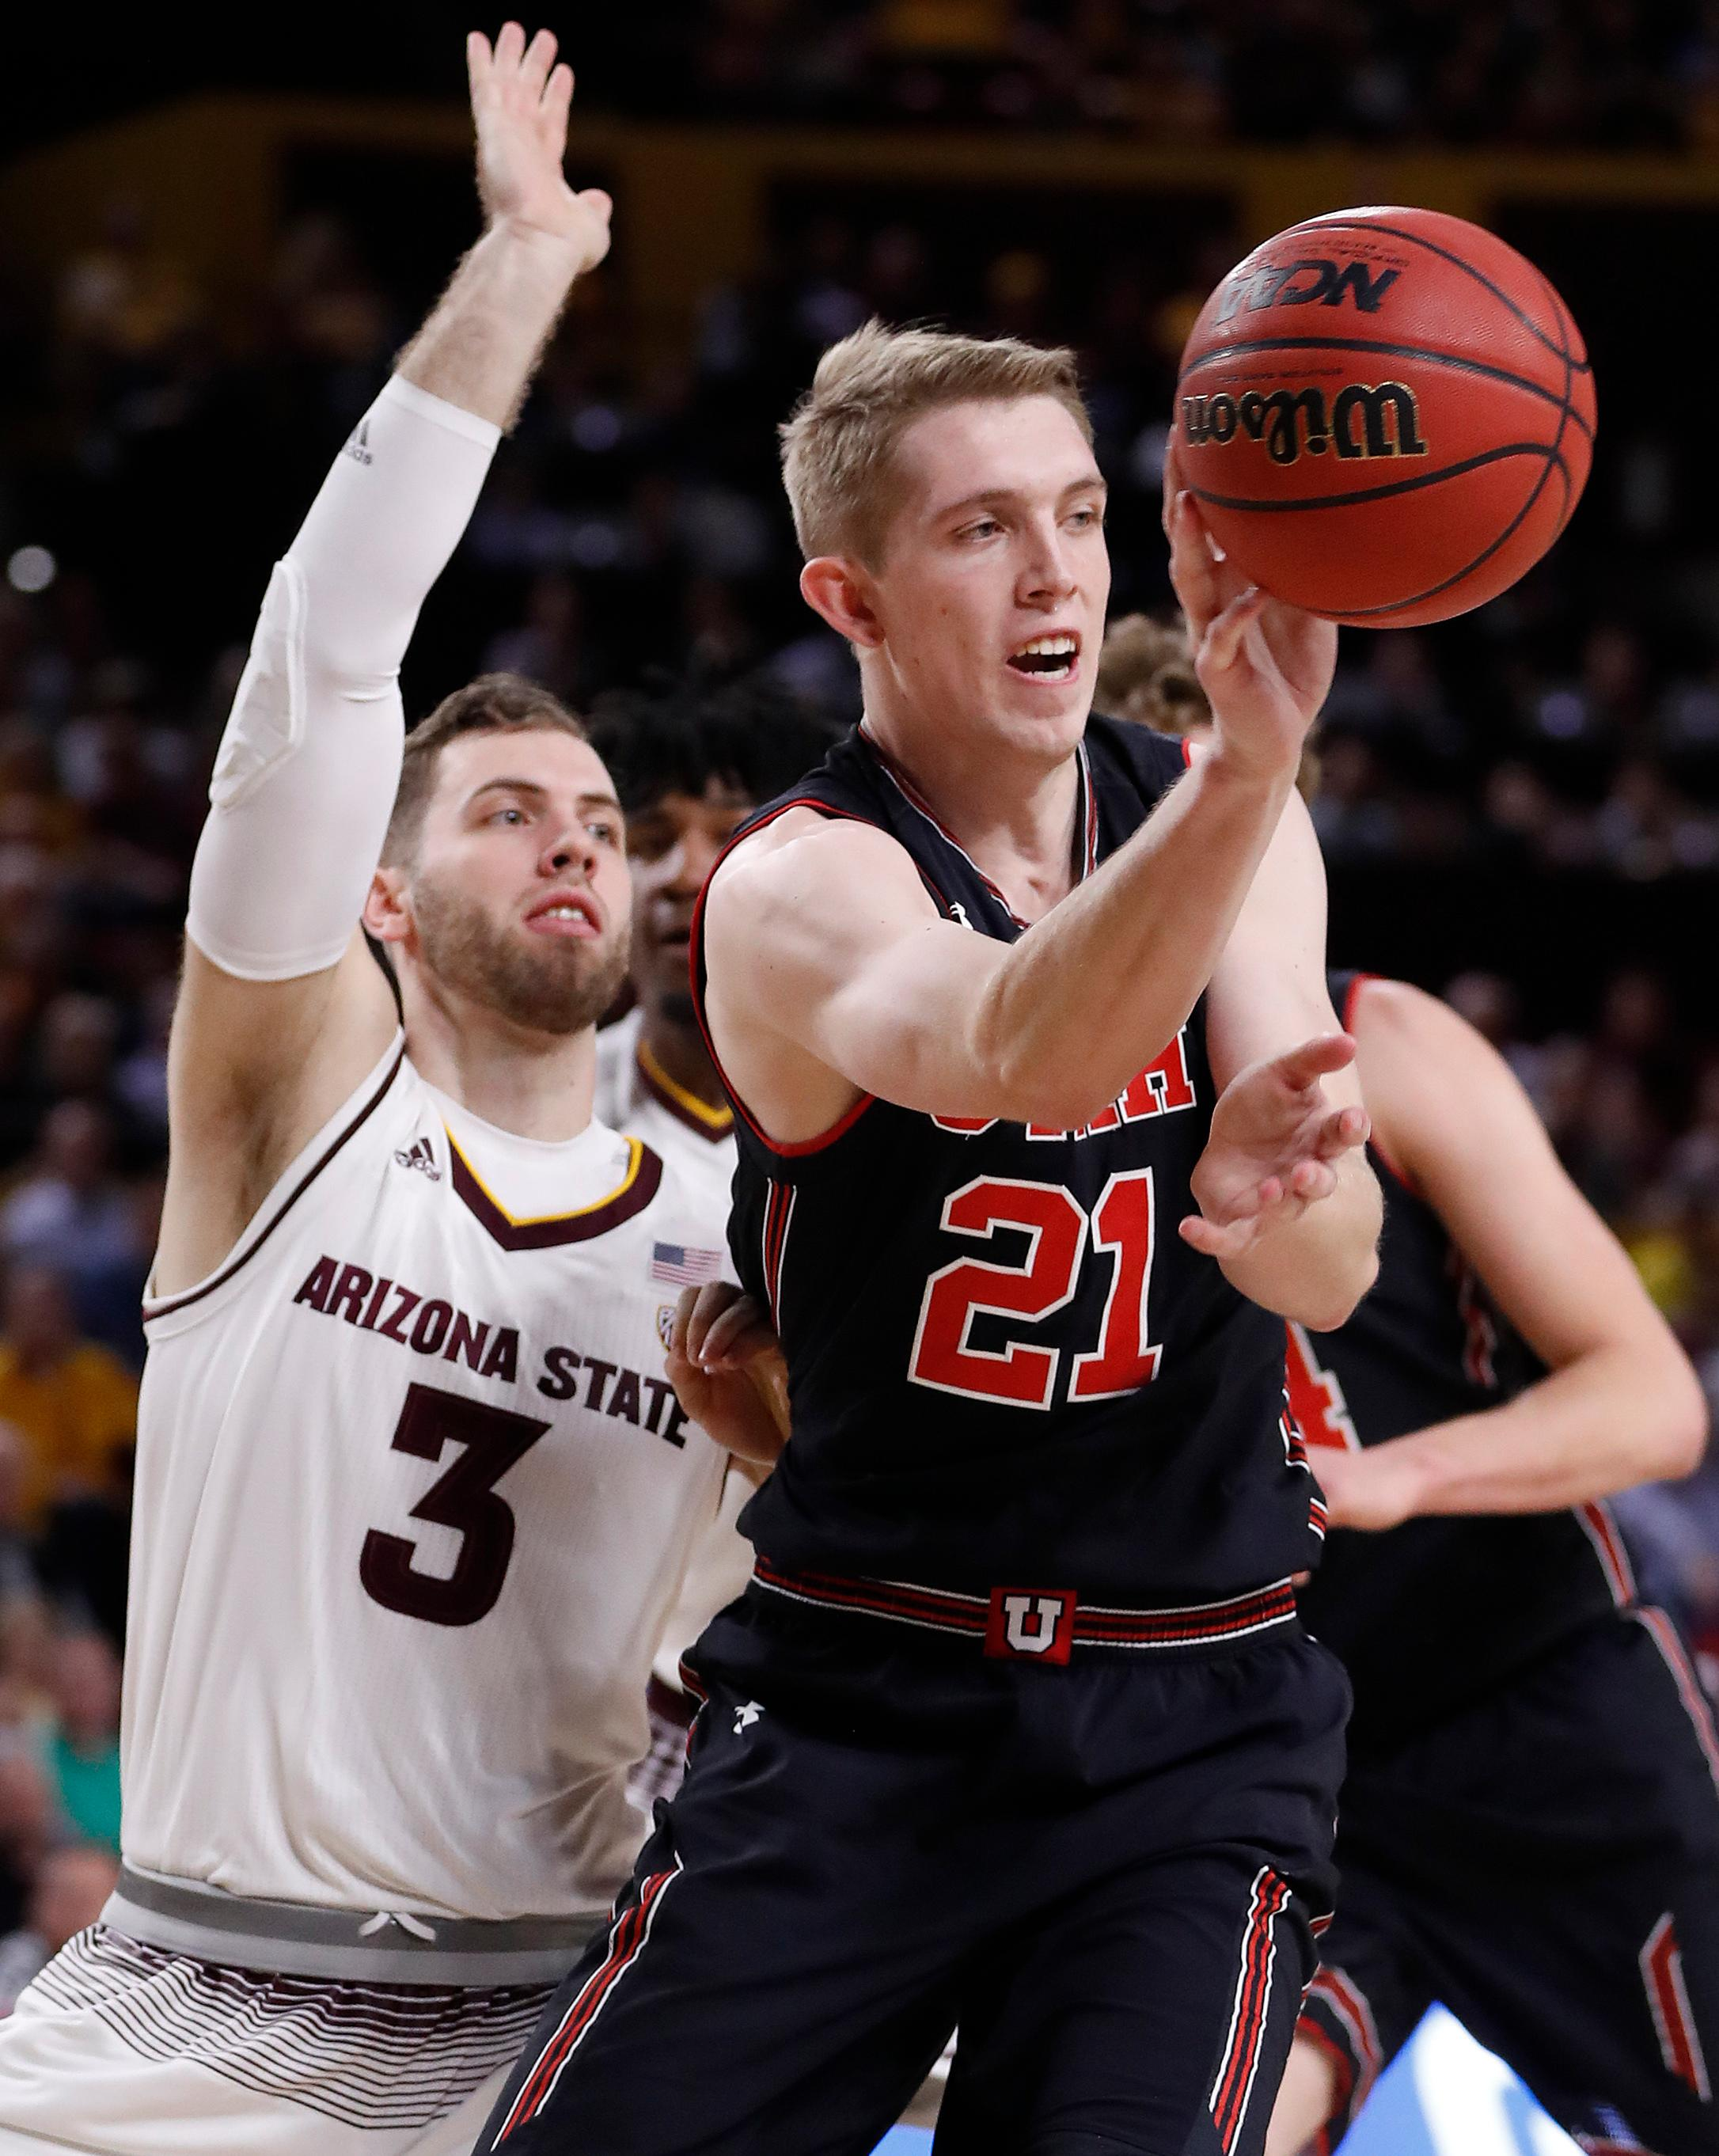 Utah forward Tyler Rawson (21) passes as Arizona State forward Mickey Mitchell (3) defends during the first half of an NCAA college basketball game, Thursday, Jan. 25, 2018,in Tempe, Ariz. (AP Photo/Matt York)